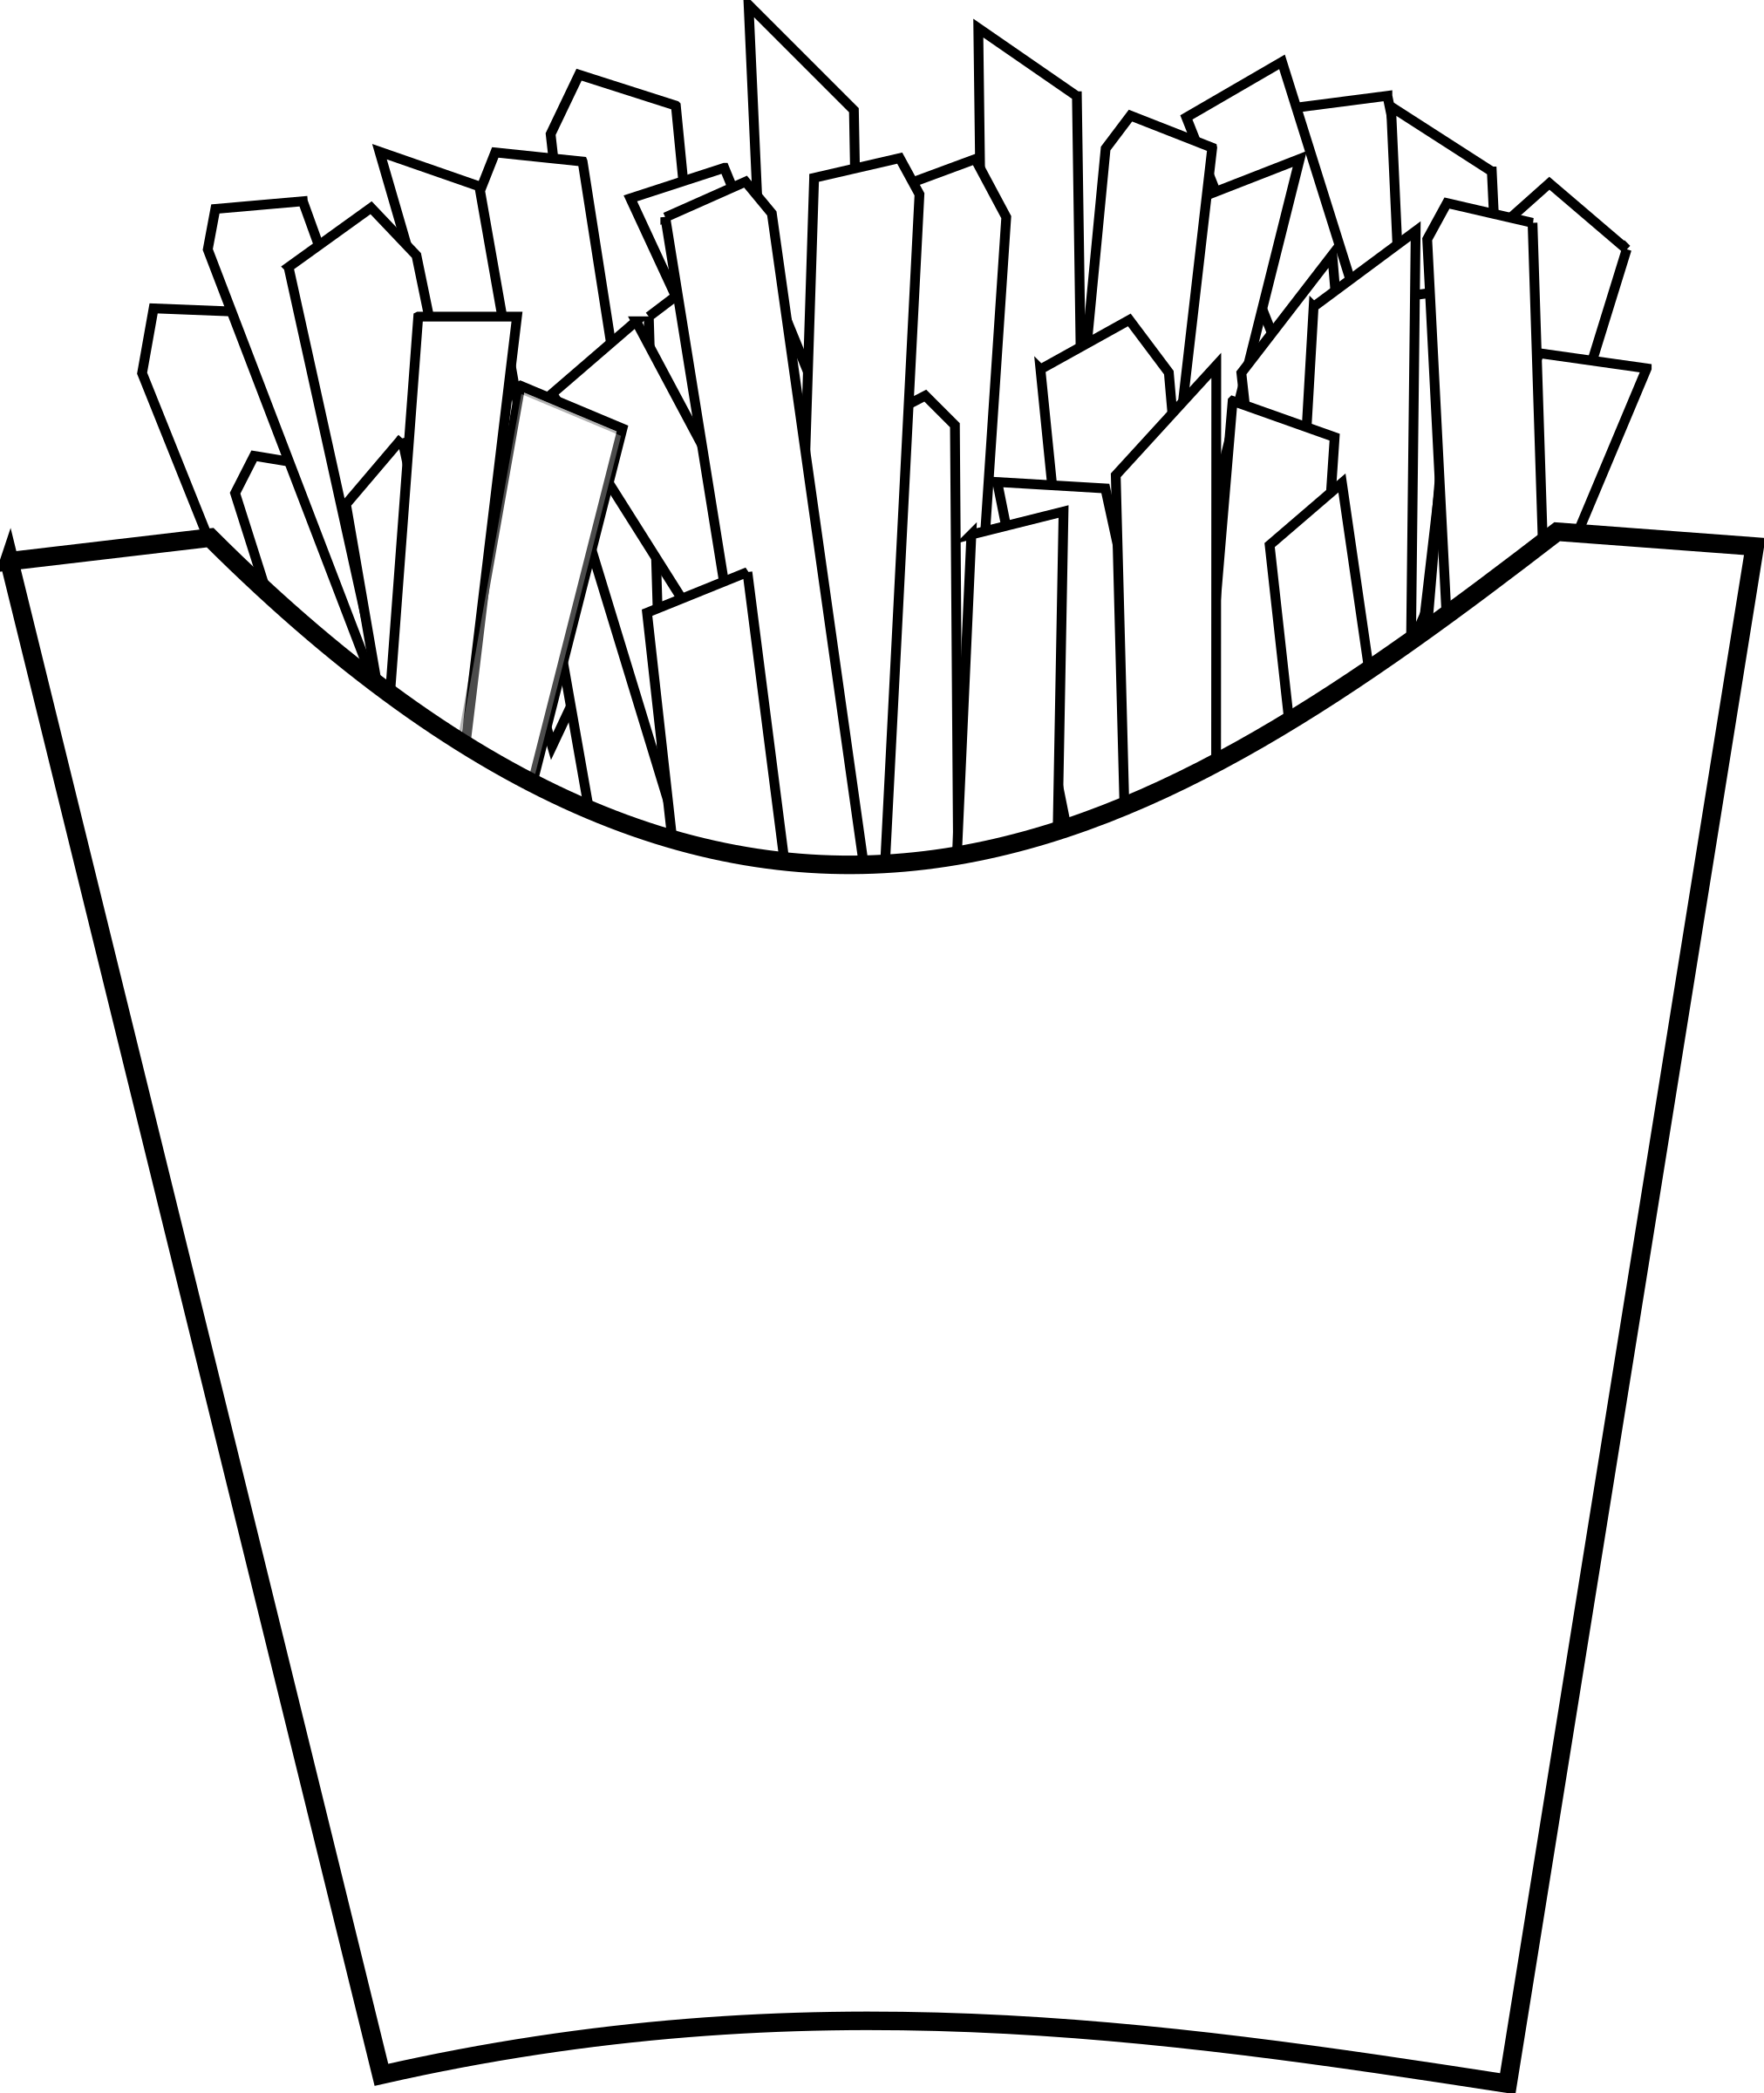 Chip drawing clip art. Clipart french fries line